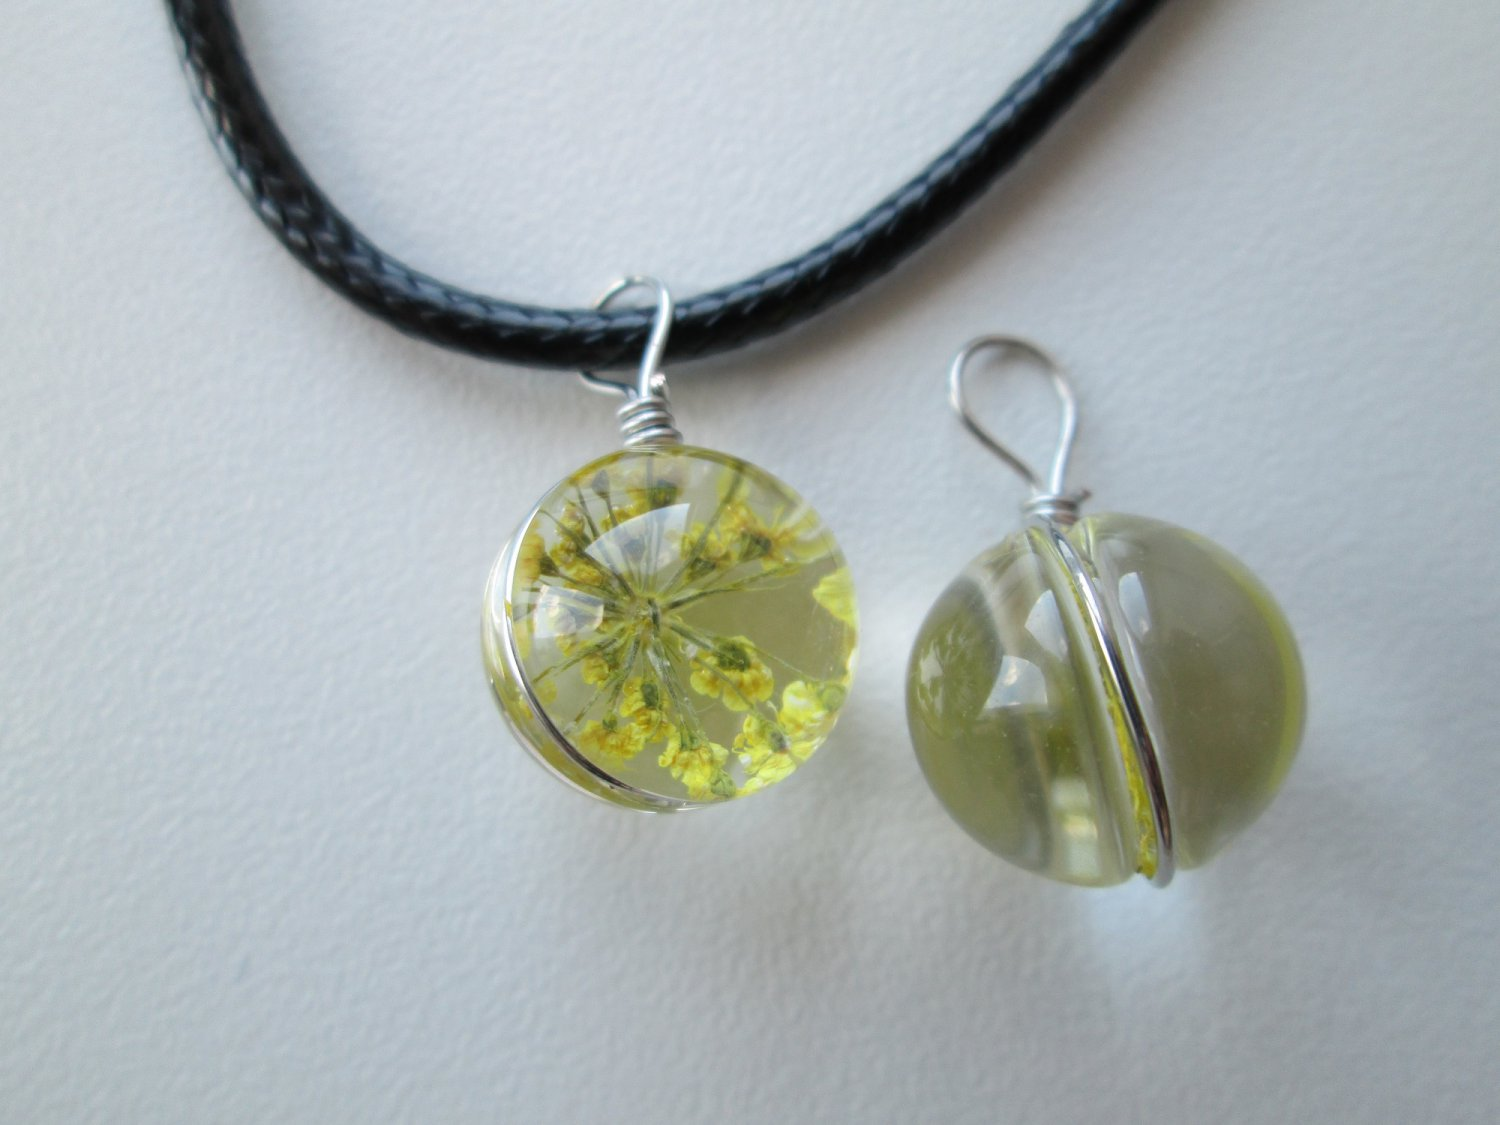 Dried pressed flower resin orb necklace.